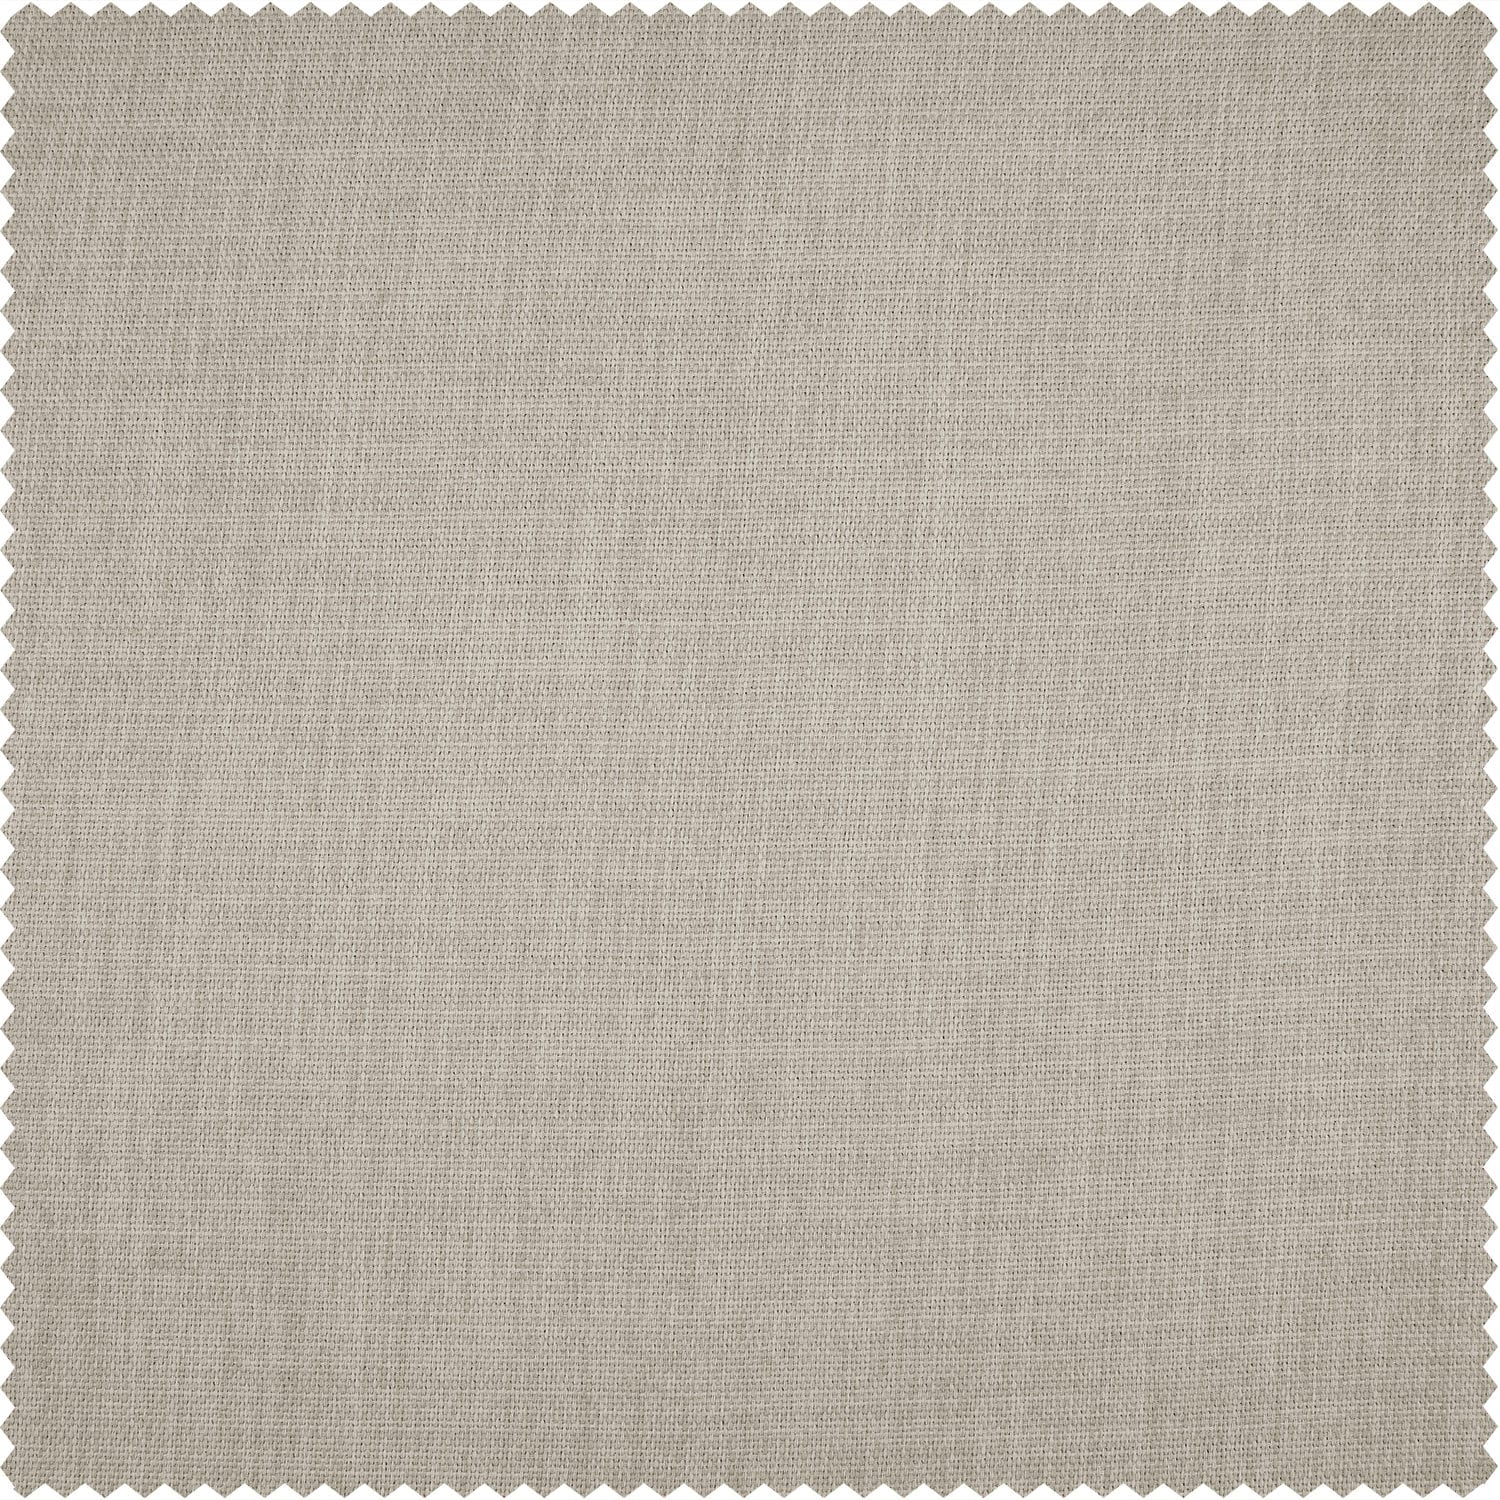 Thatched Tan Faux Linen Room Darkening Fabric